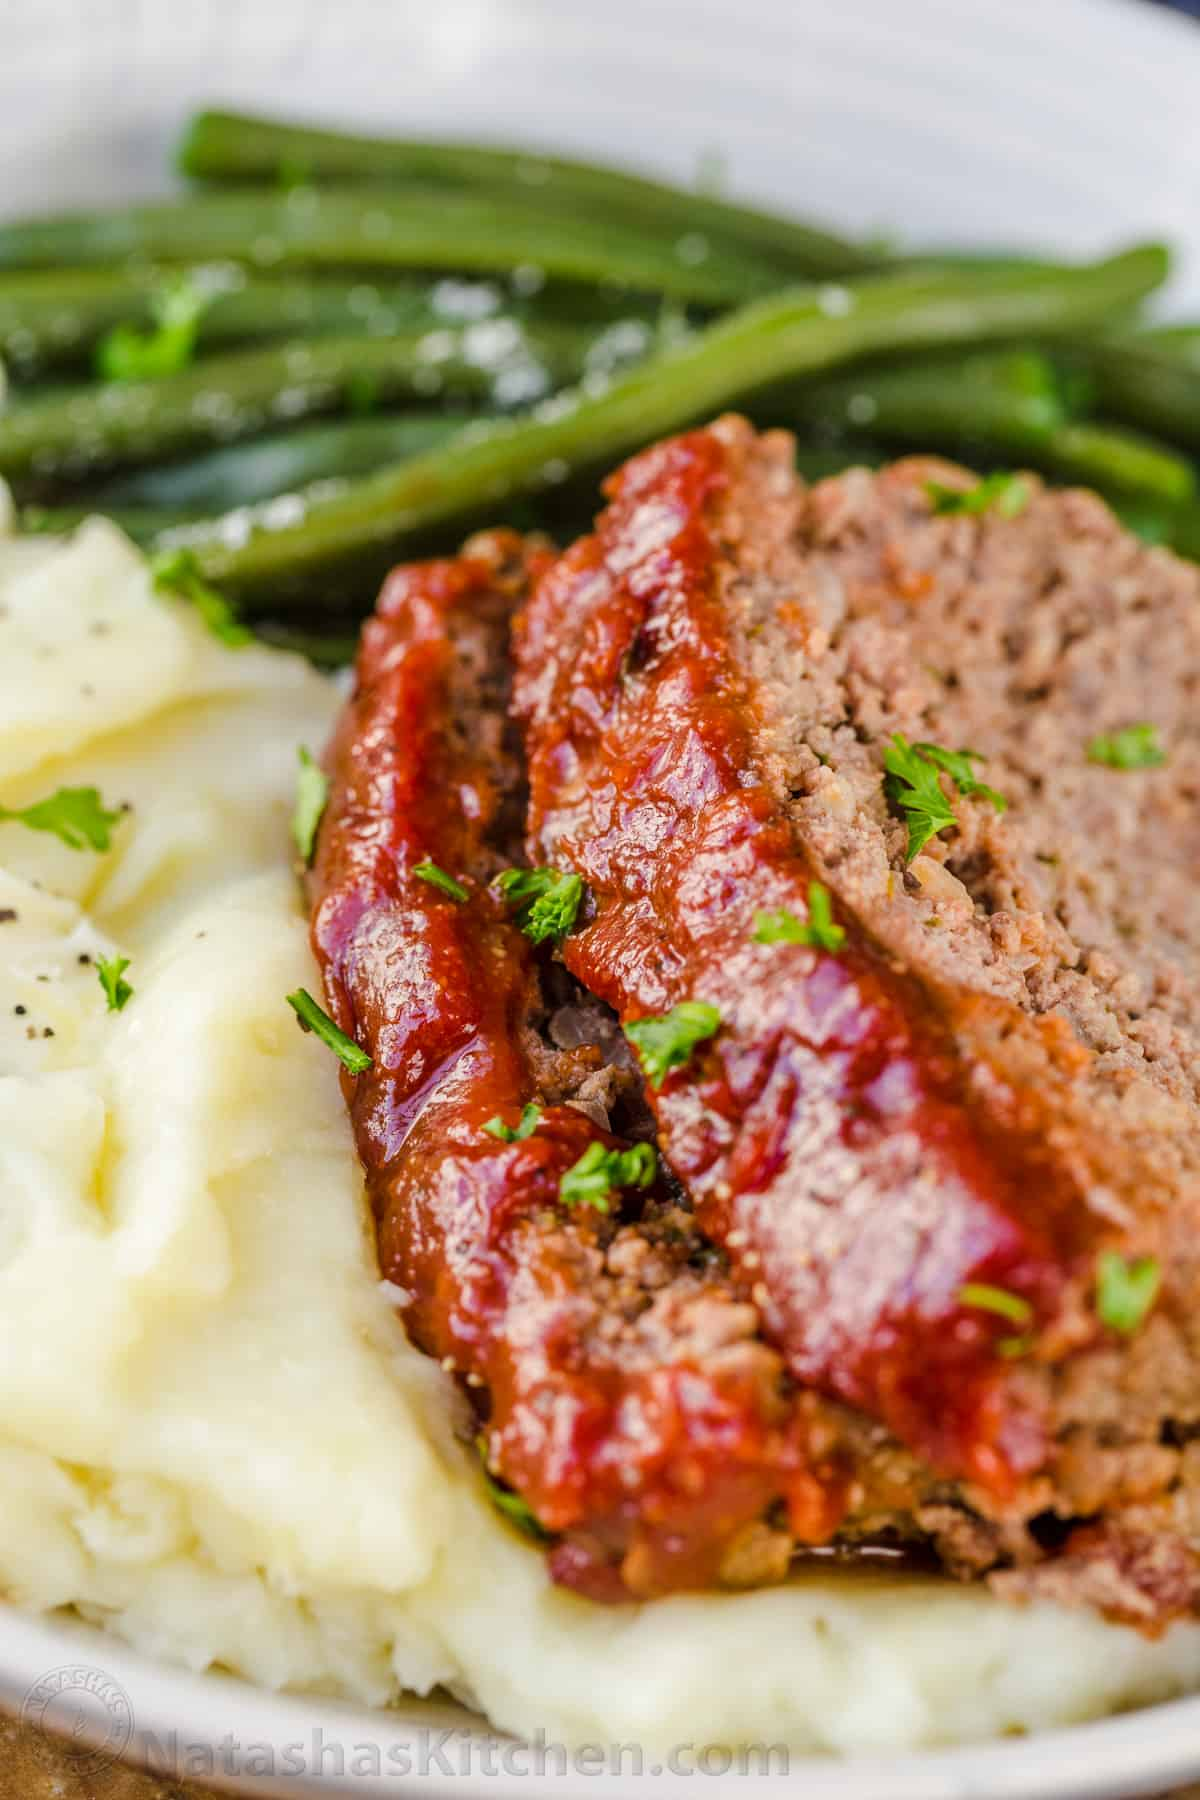 Meatloaf Recipe With The Best Glaze Natashaskitchen Com